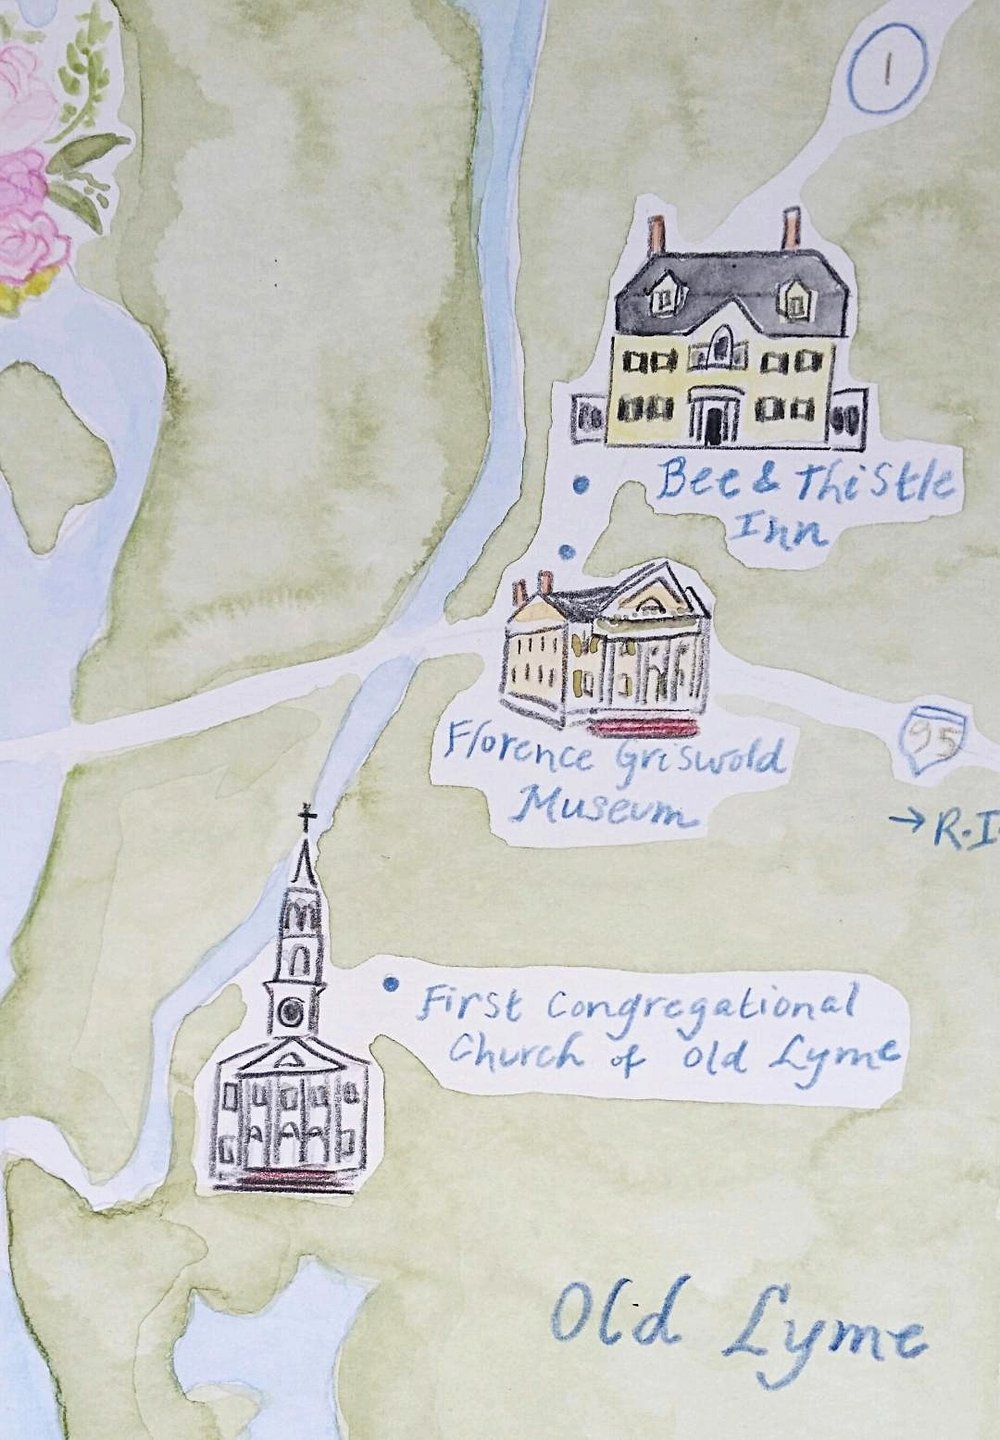 old saybrook map detail.jpg